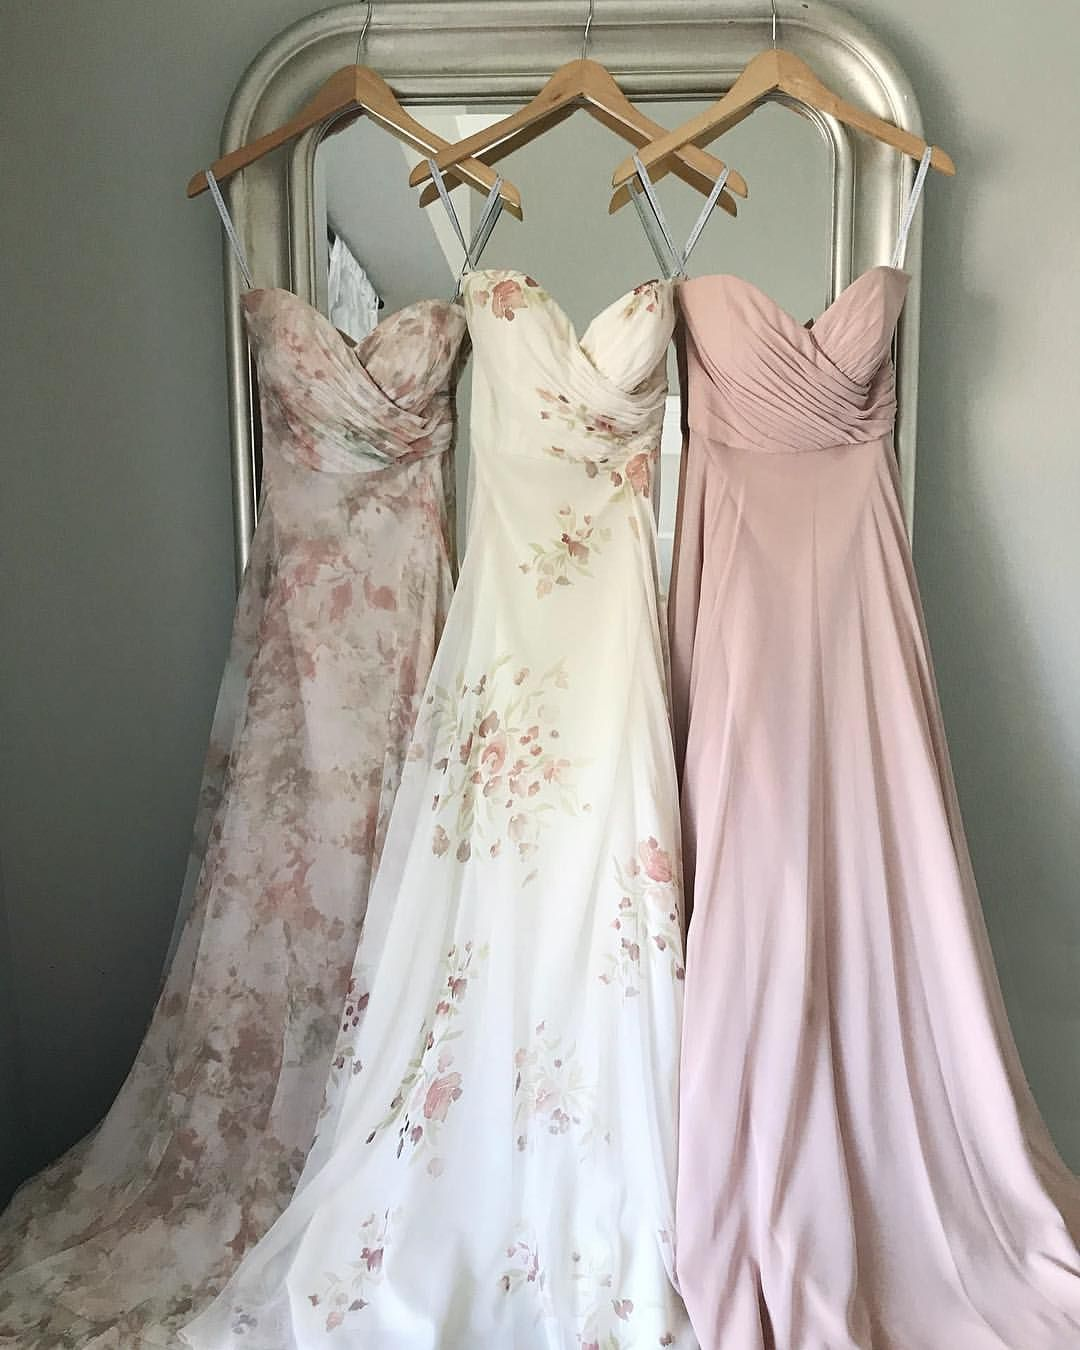 Adeline Bridesmaid Dress 3 Ways By Jenny Yoo 1 Watercolor Blush 2